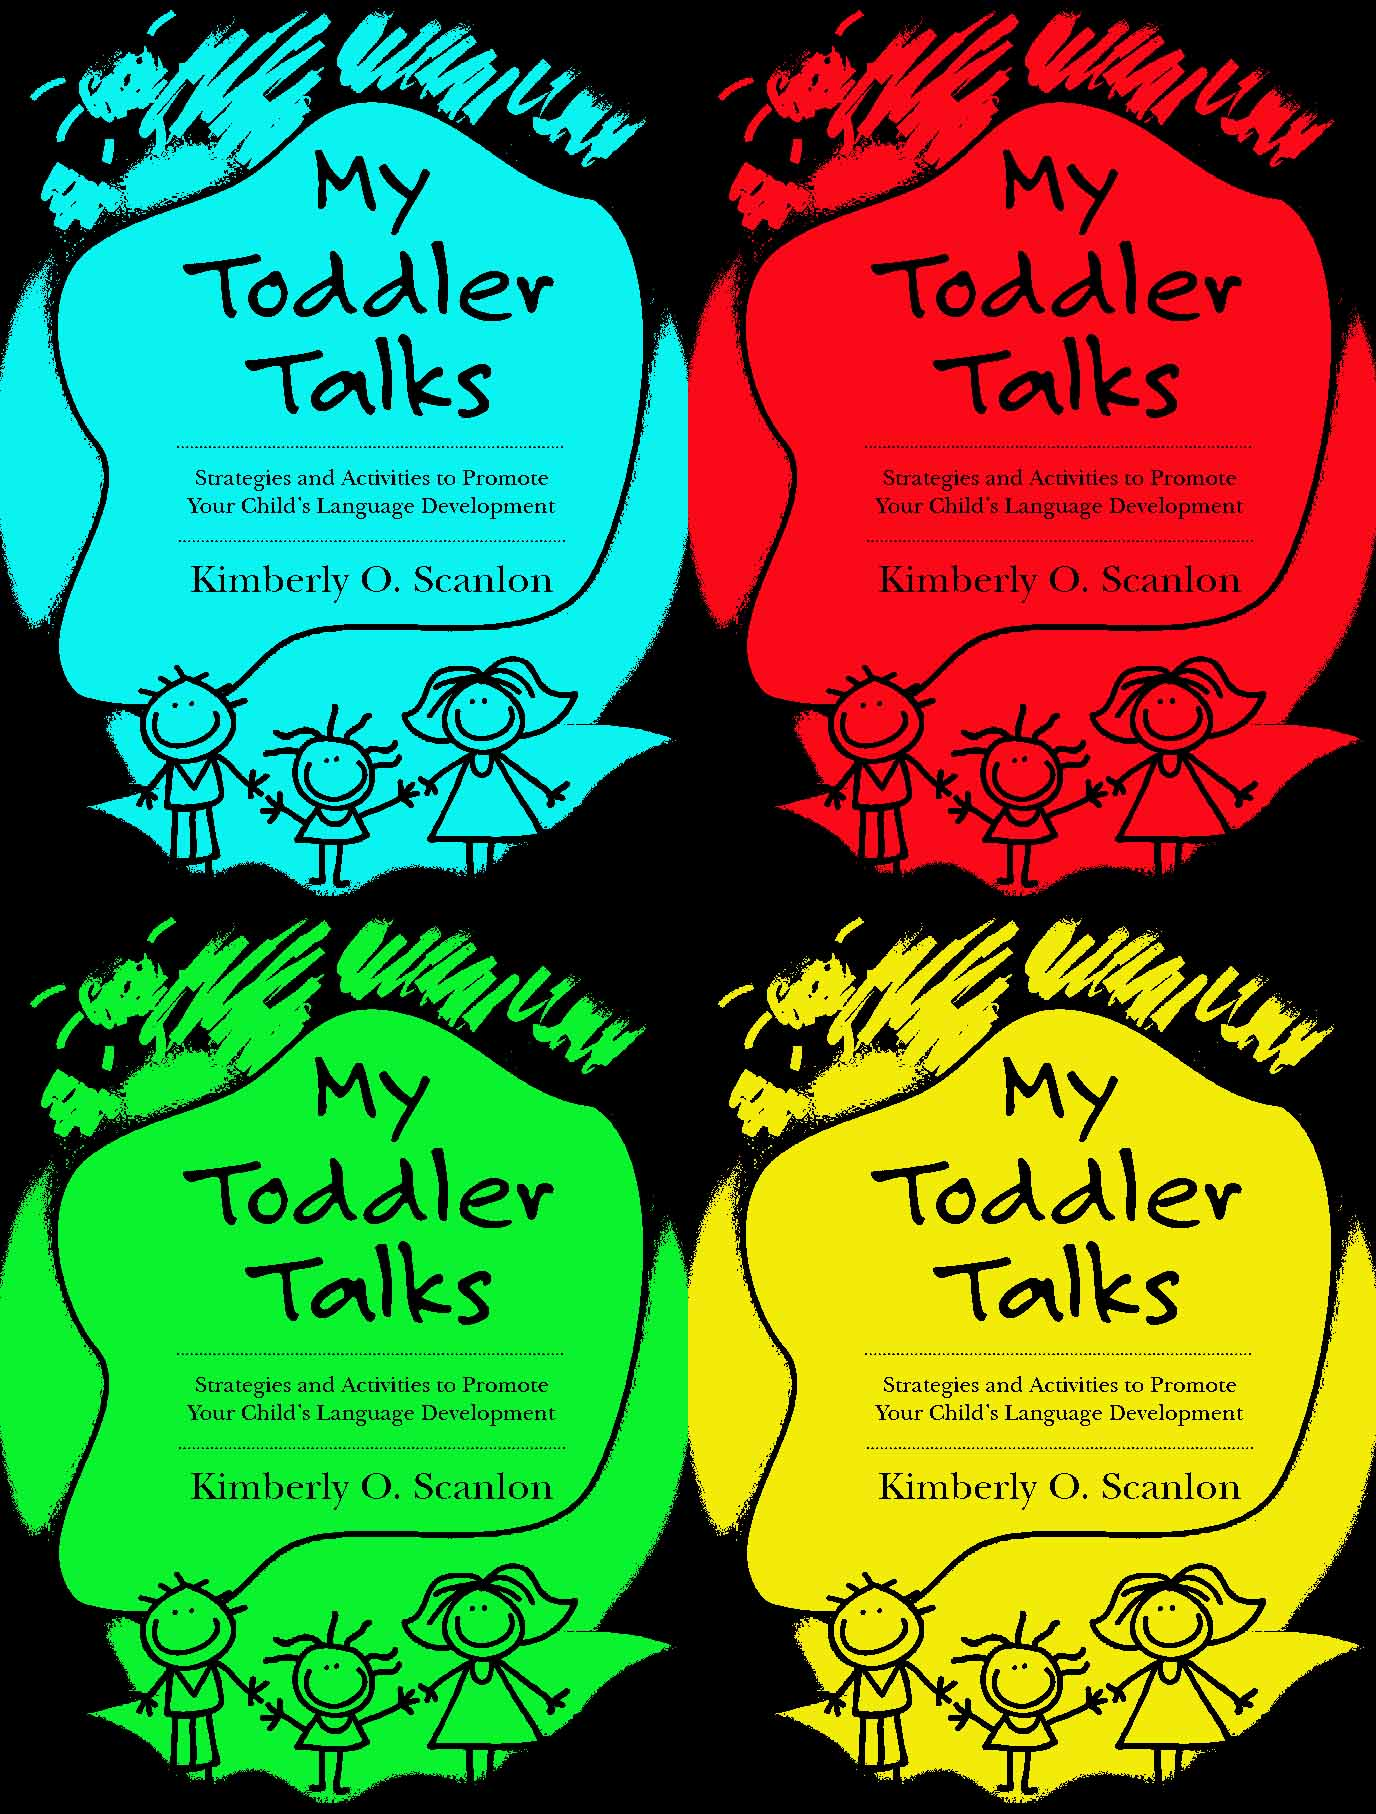 My Toddler Talks Book Cover-posterized